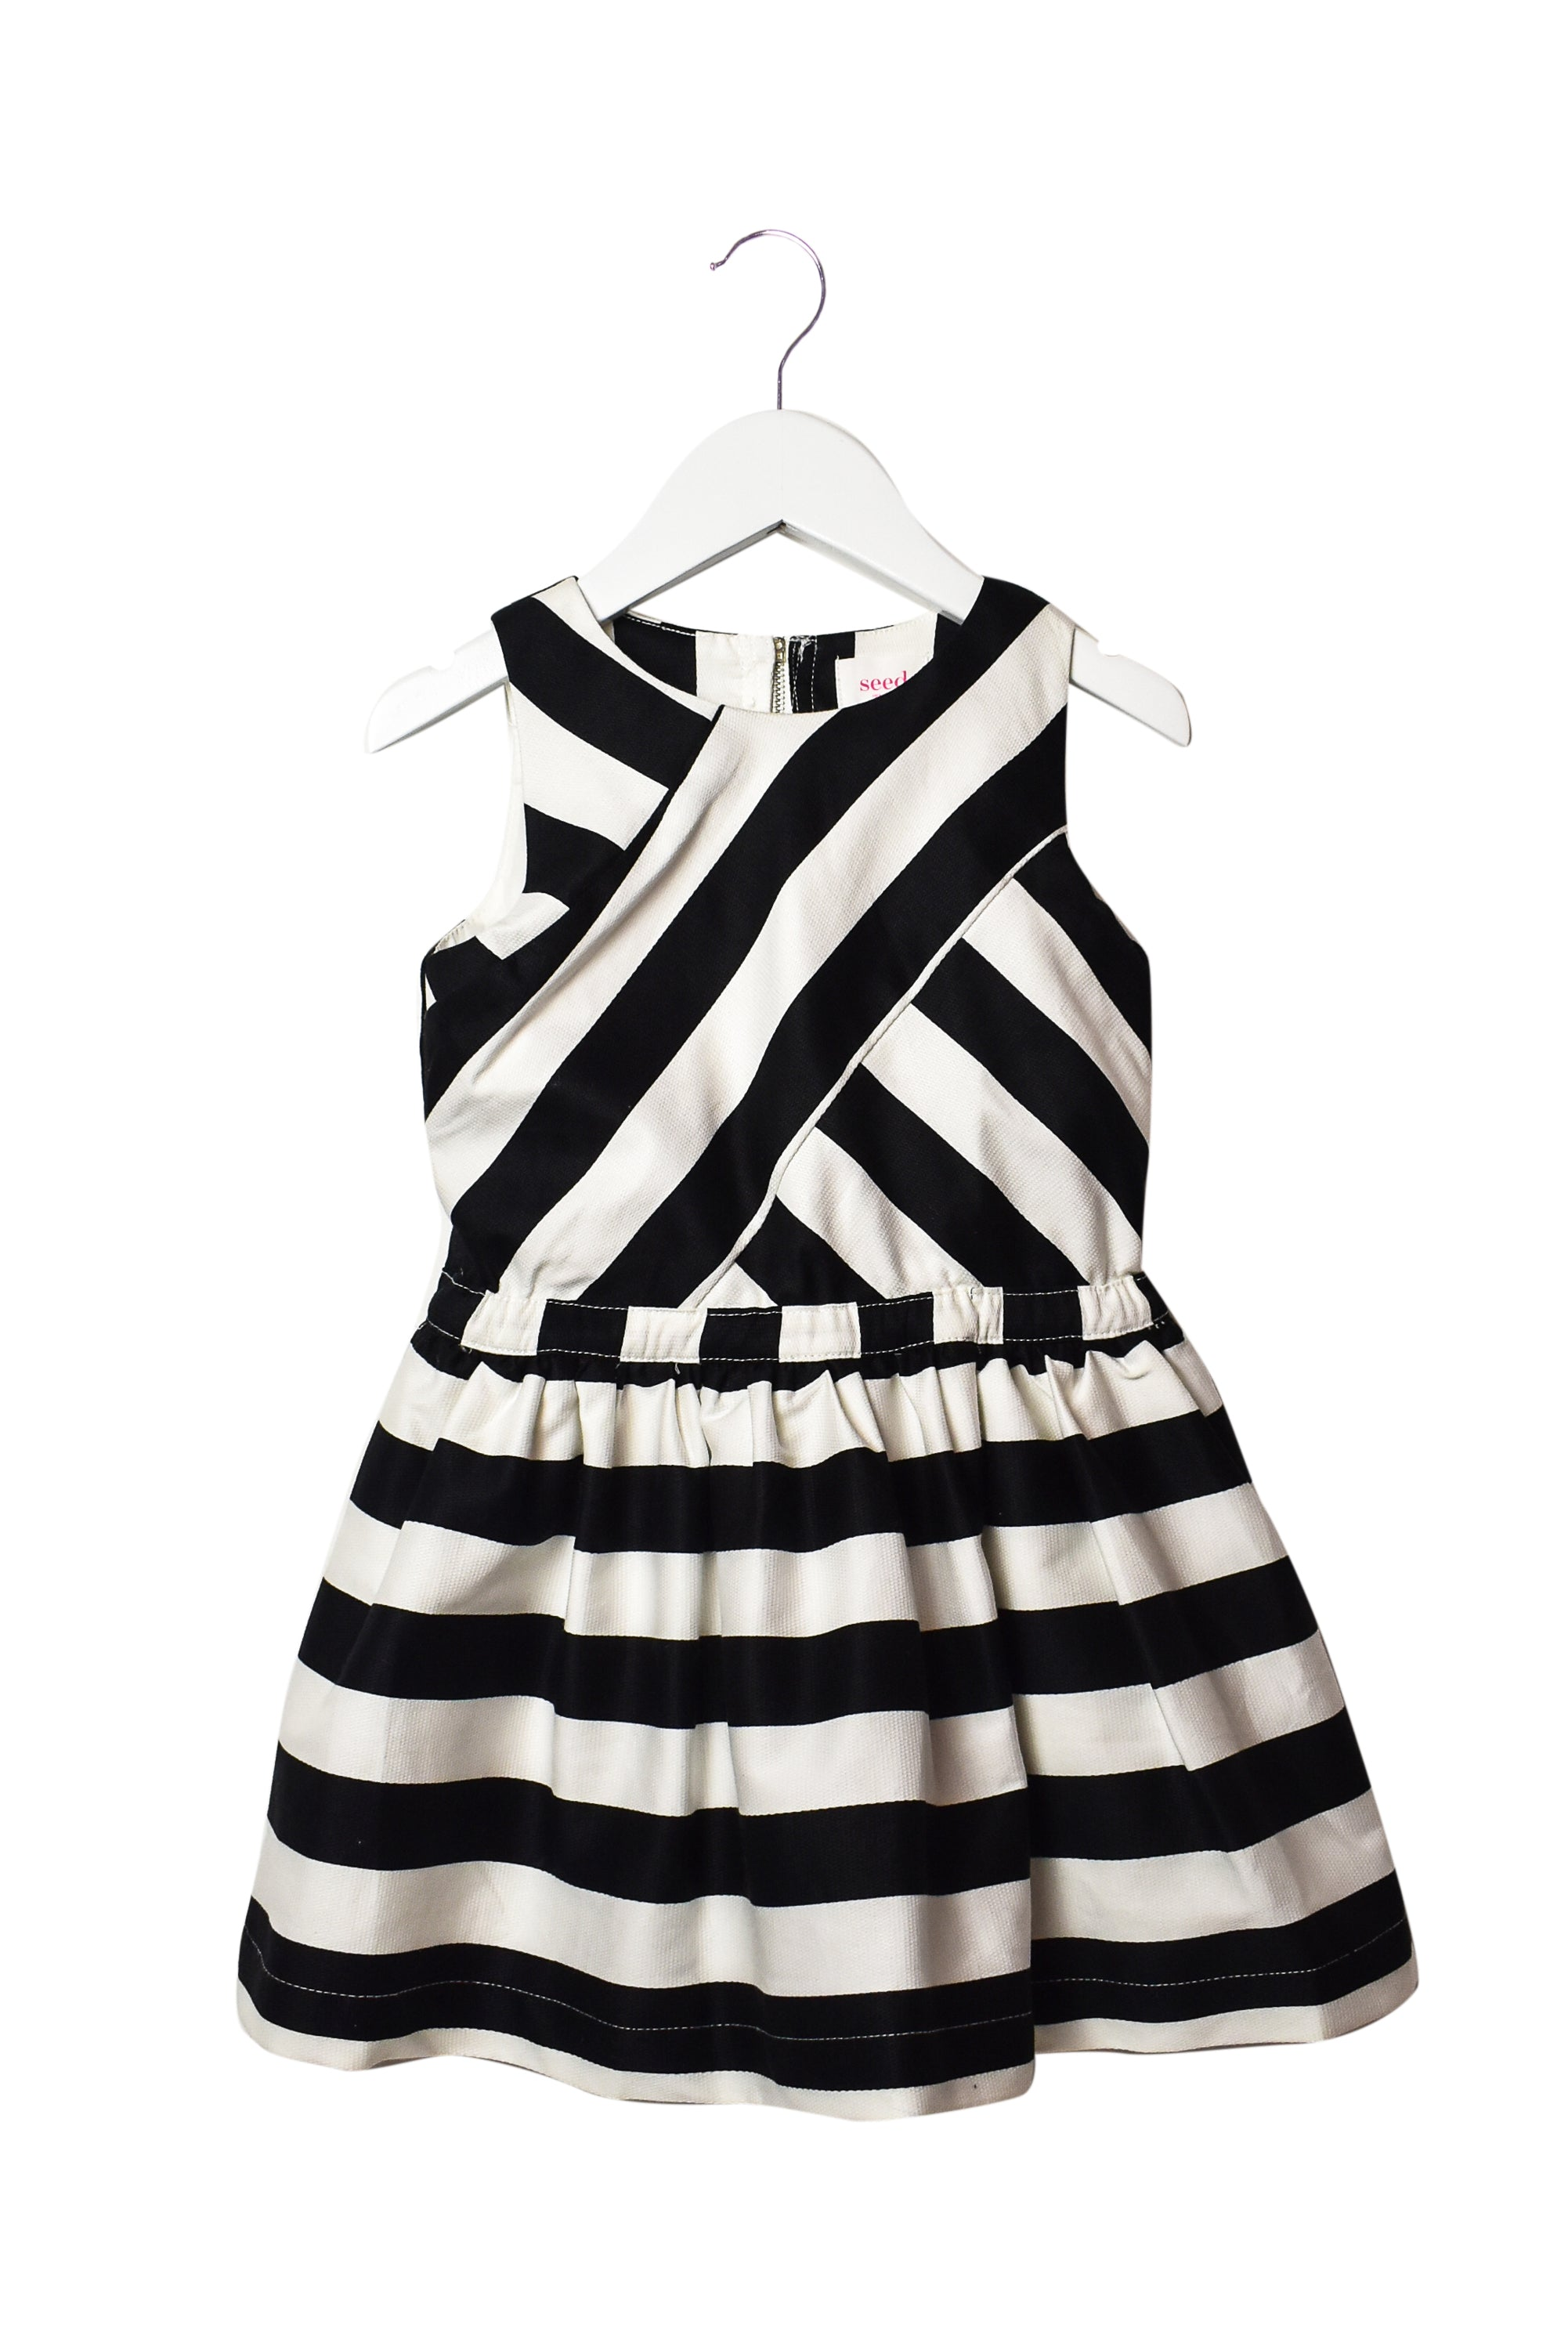 10007967 Seed Kids~ Dress 3-4T at Retykle